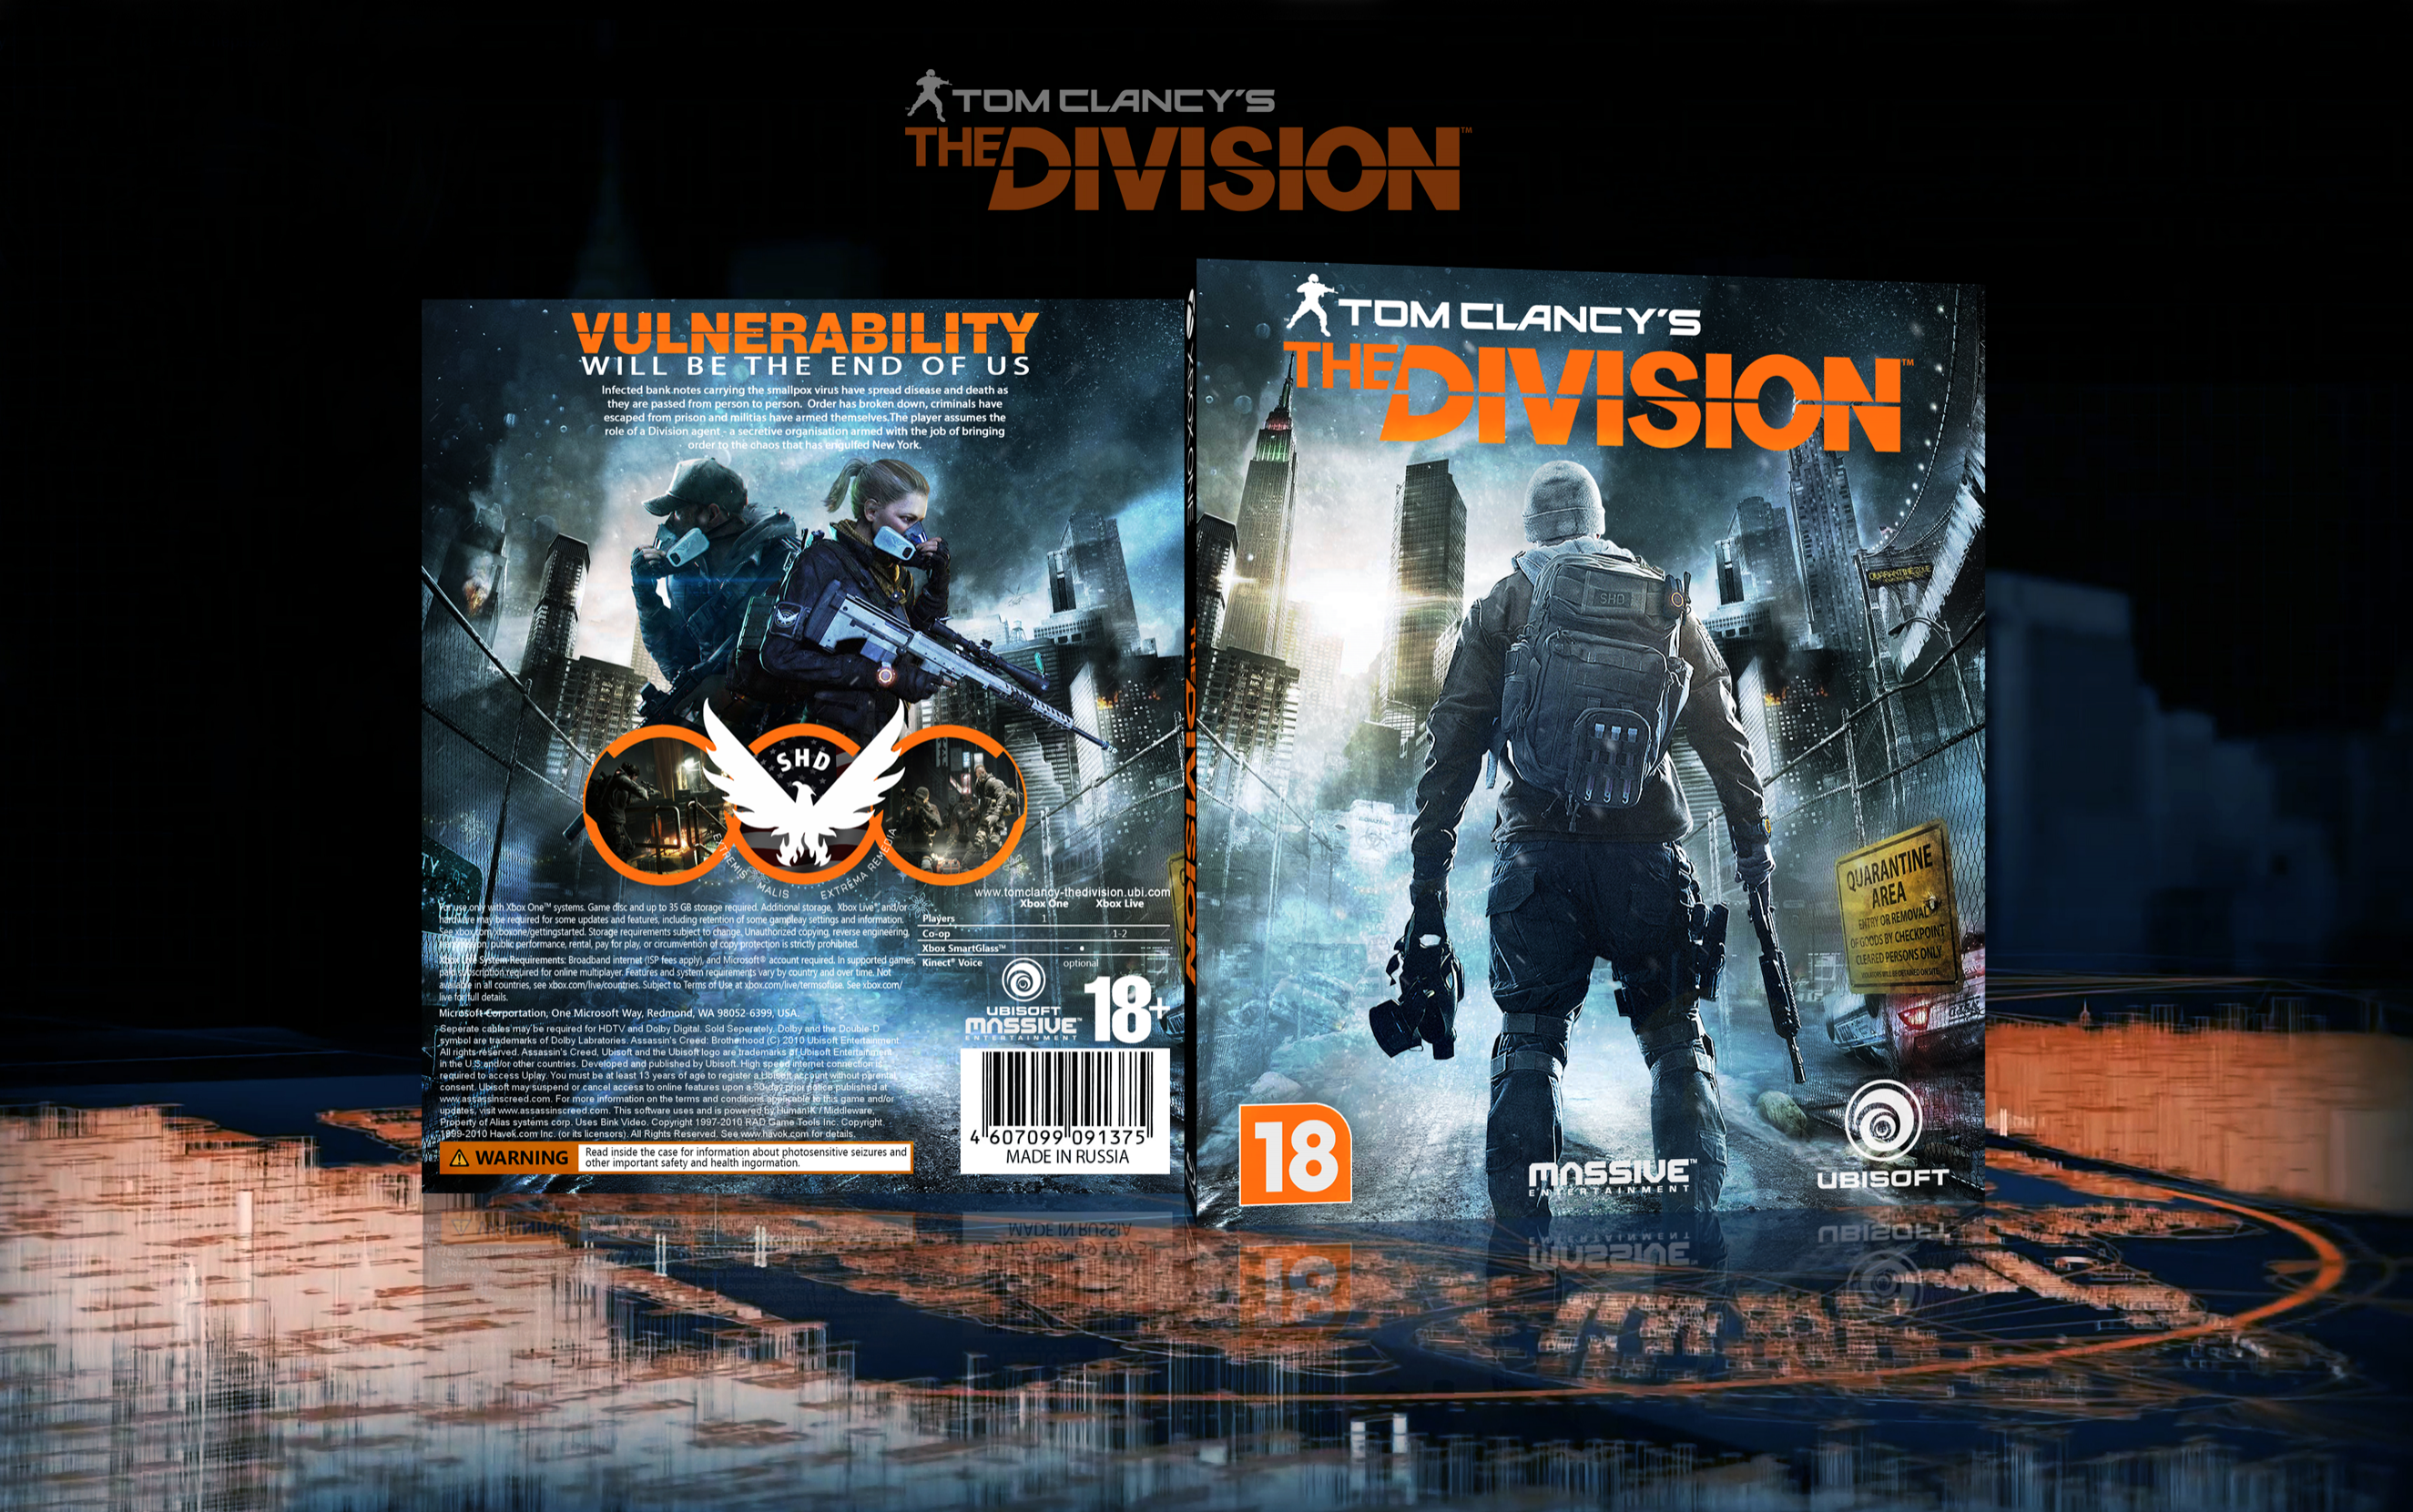 Tom clancy s the ision xbox one box art cover by fergana16